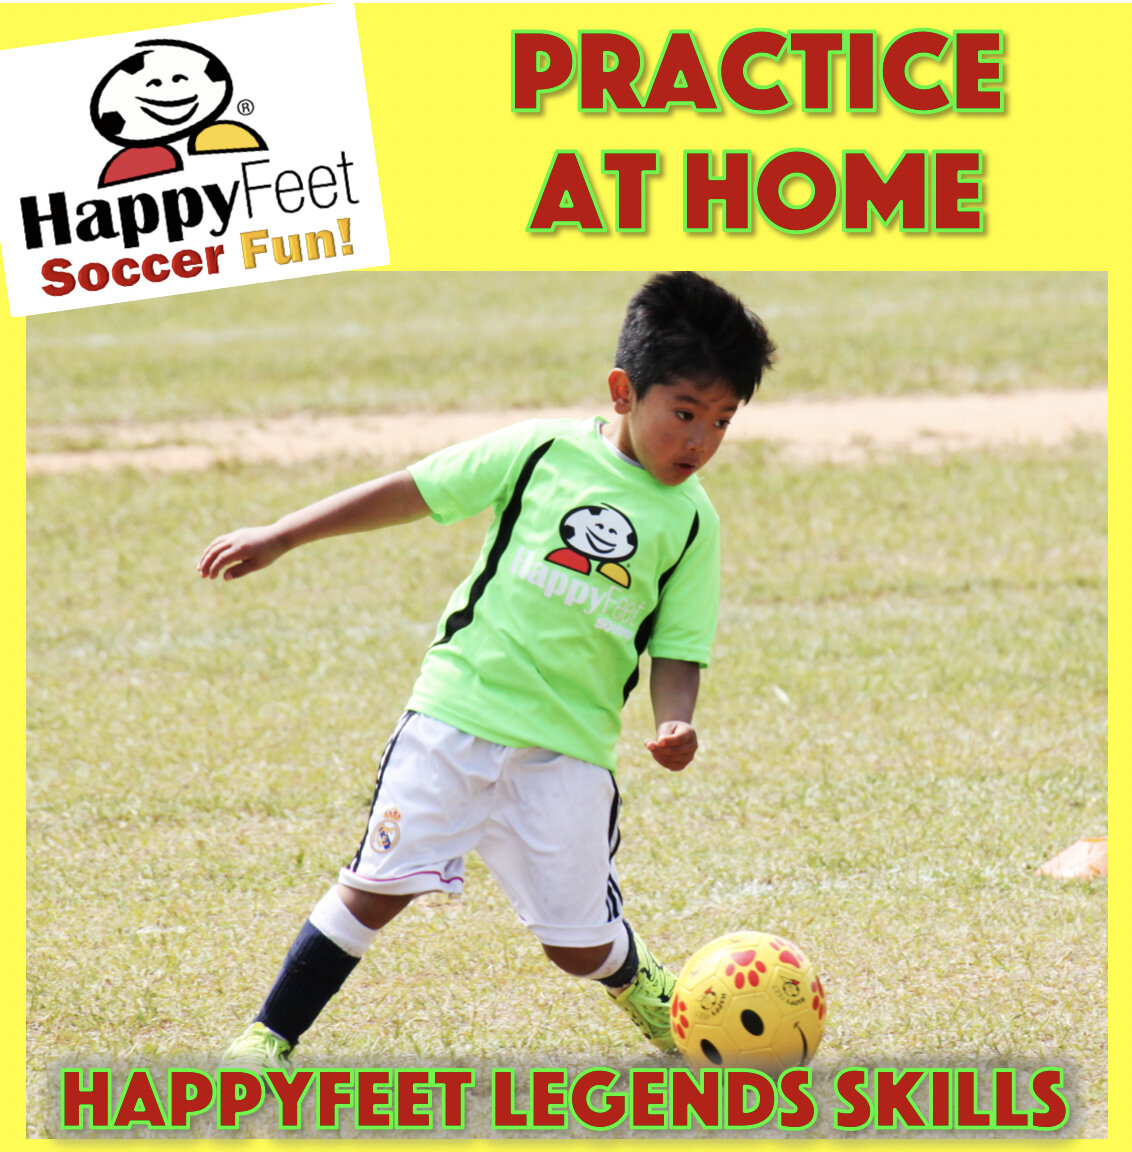 Practice Your Skills at Home